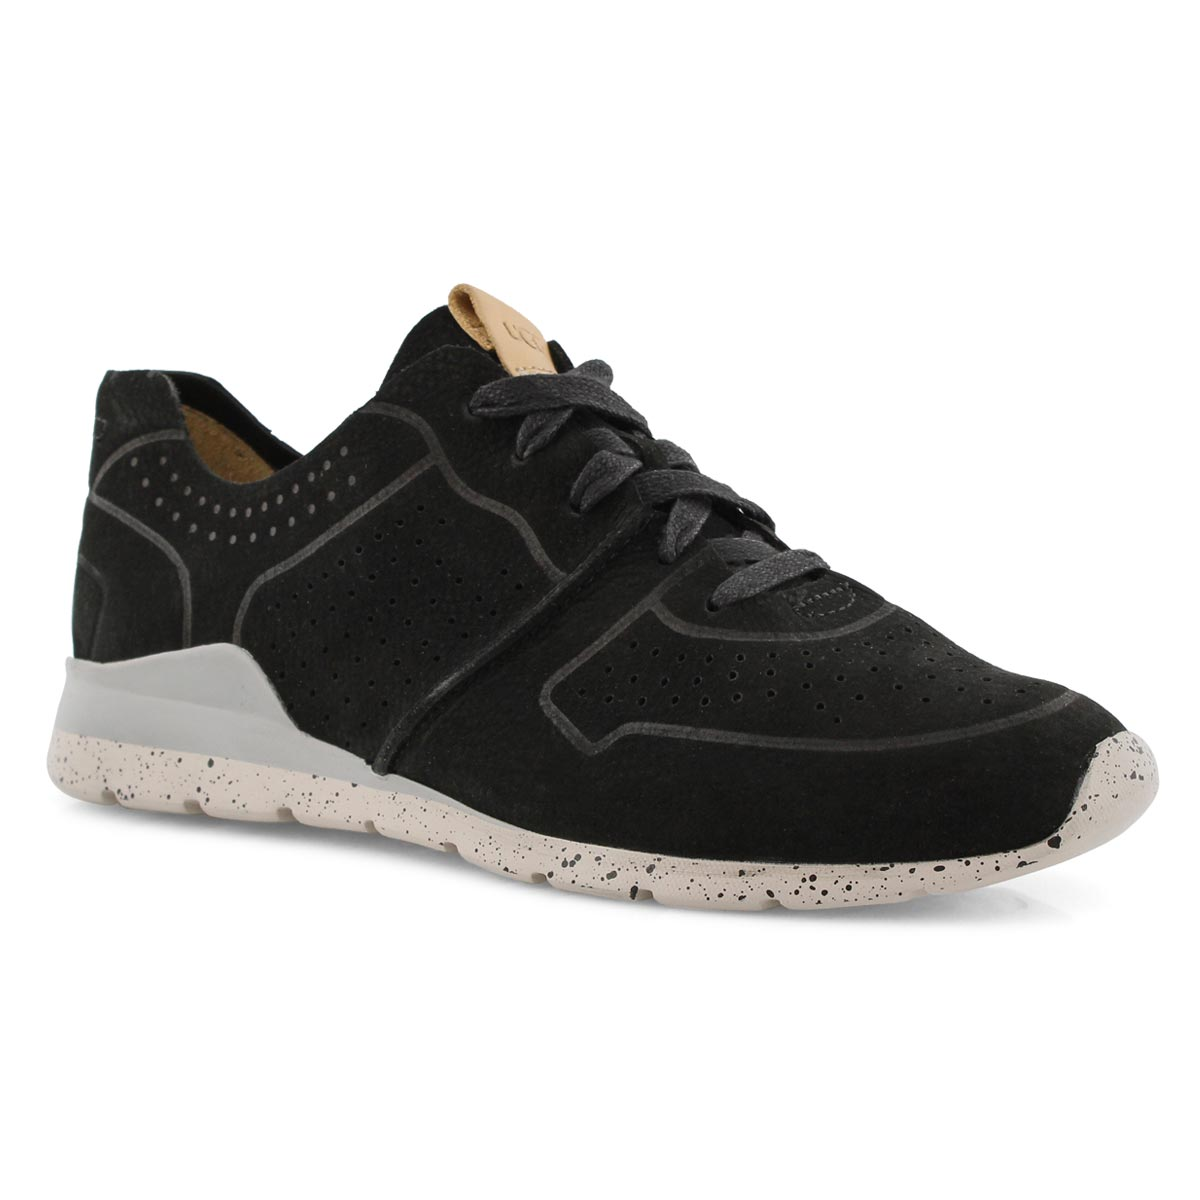 Lds Tye black lace up casual sneaker